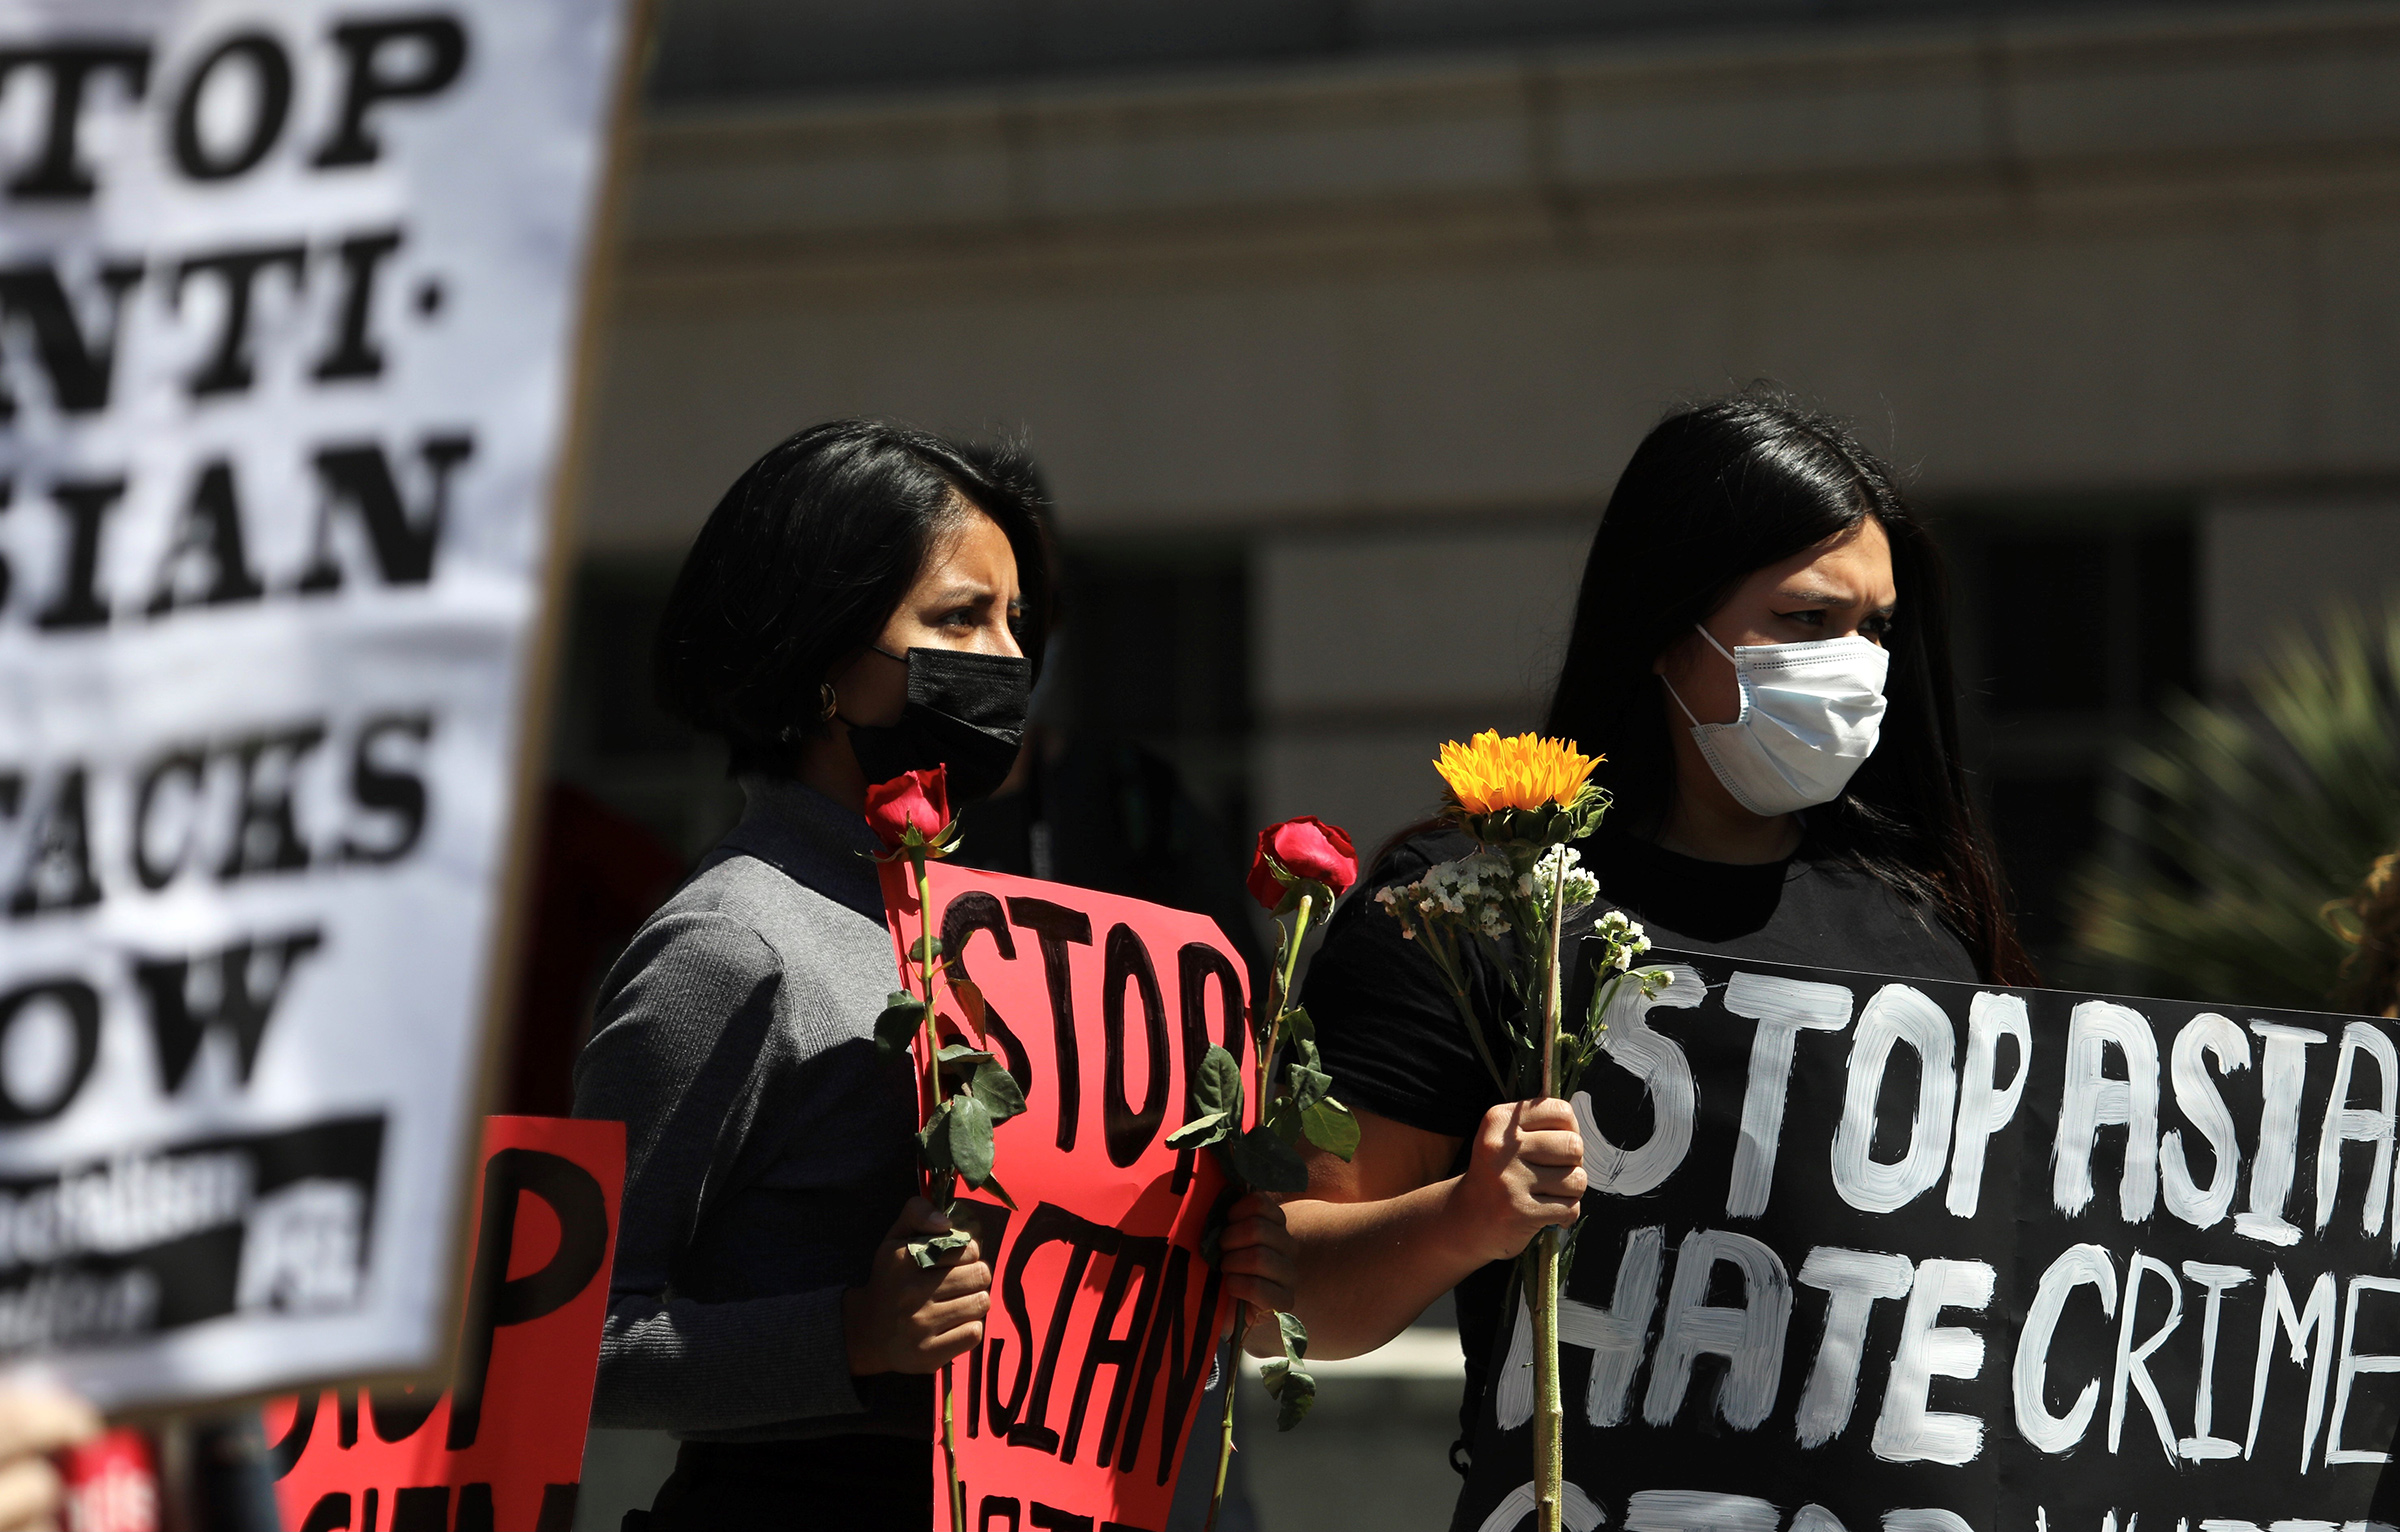 People participate in a Stop Asian Hate rally and march at City Hall in Los Angeles, on March 27, 2021.